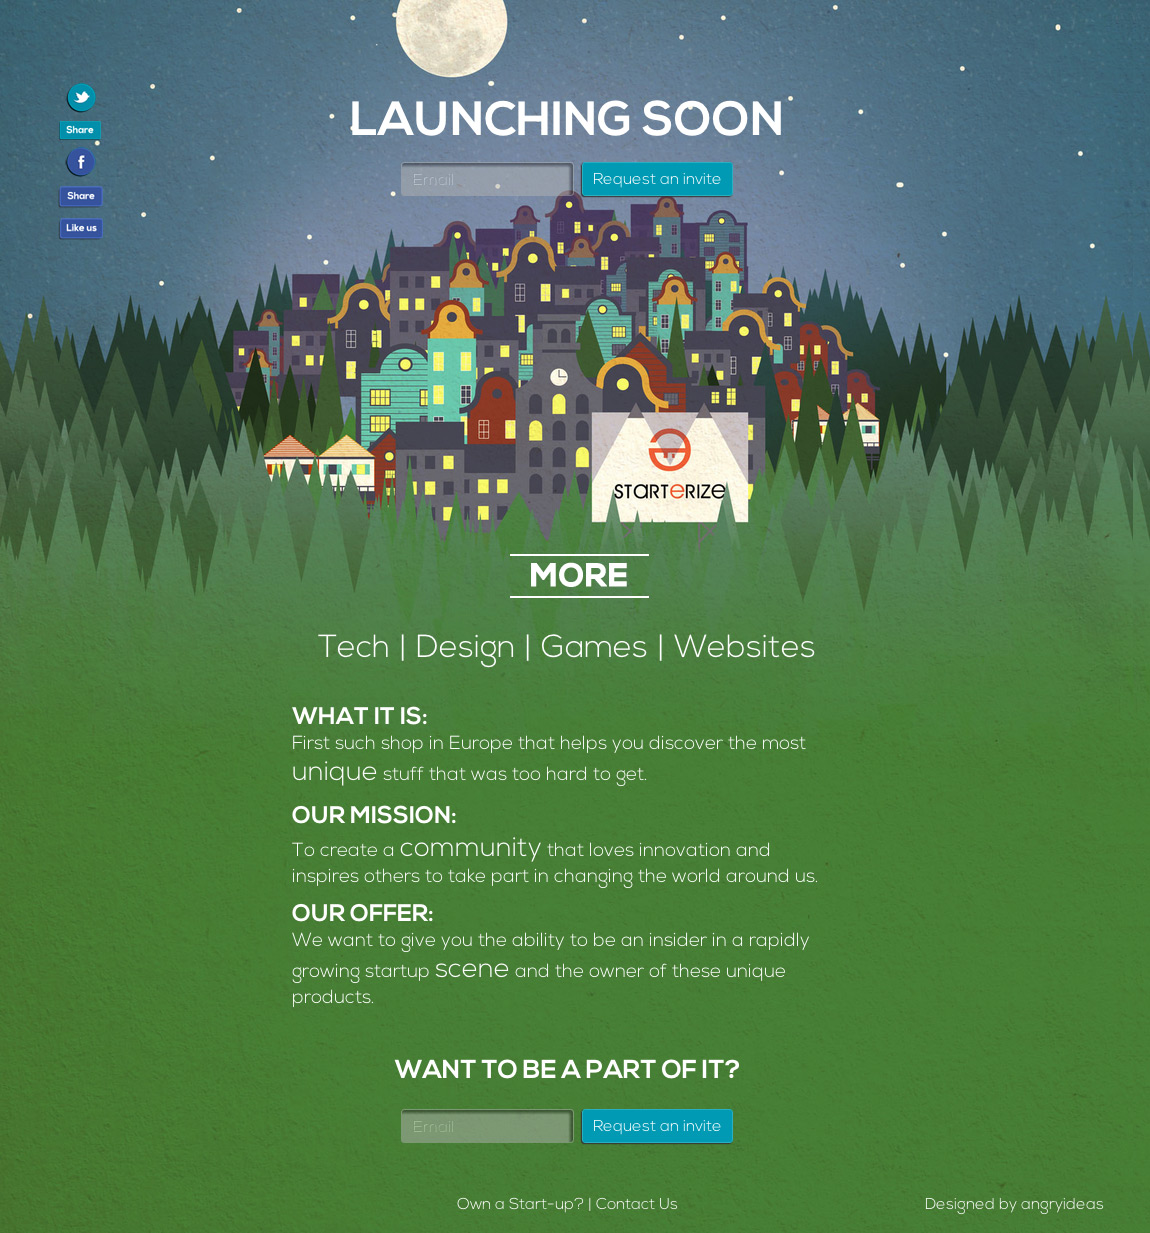 Starterize Website Screenshot